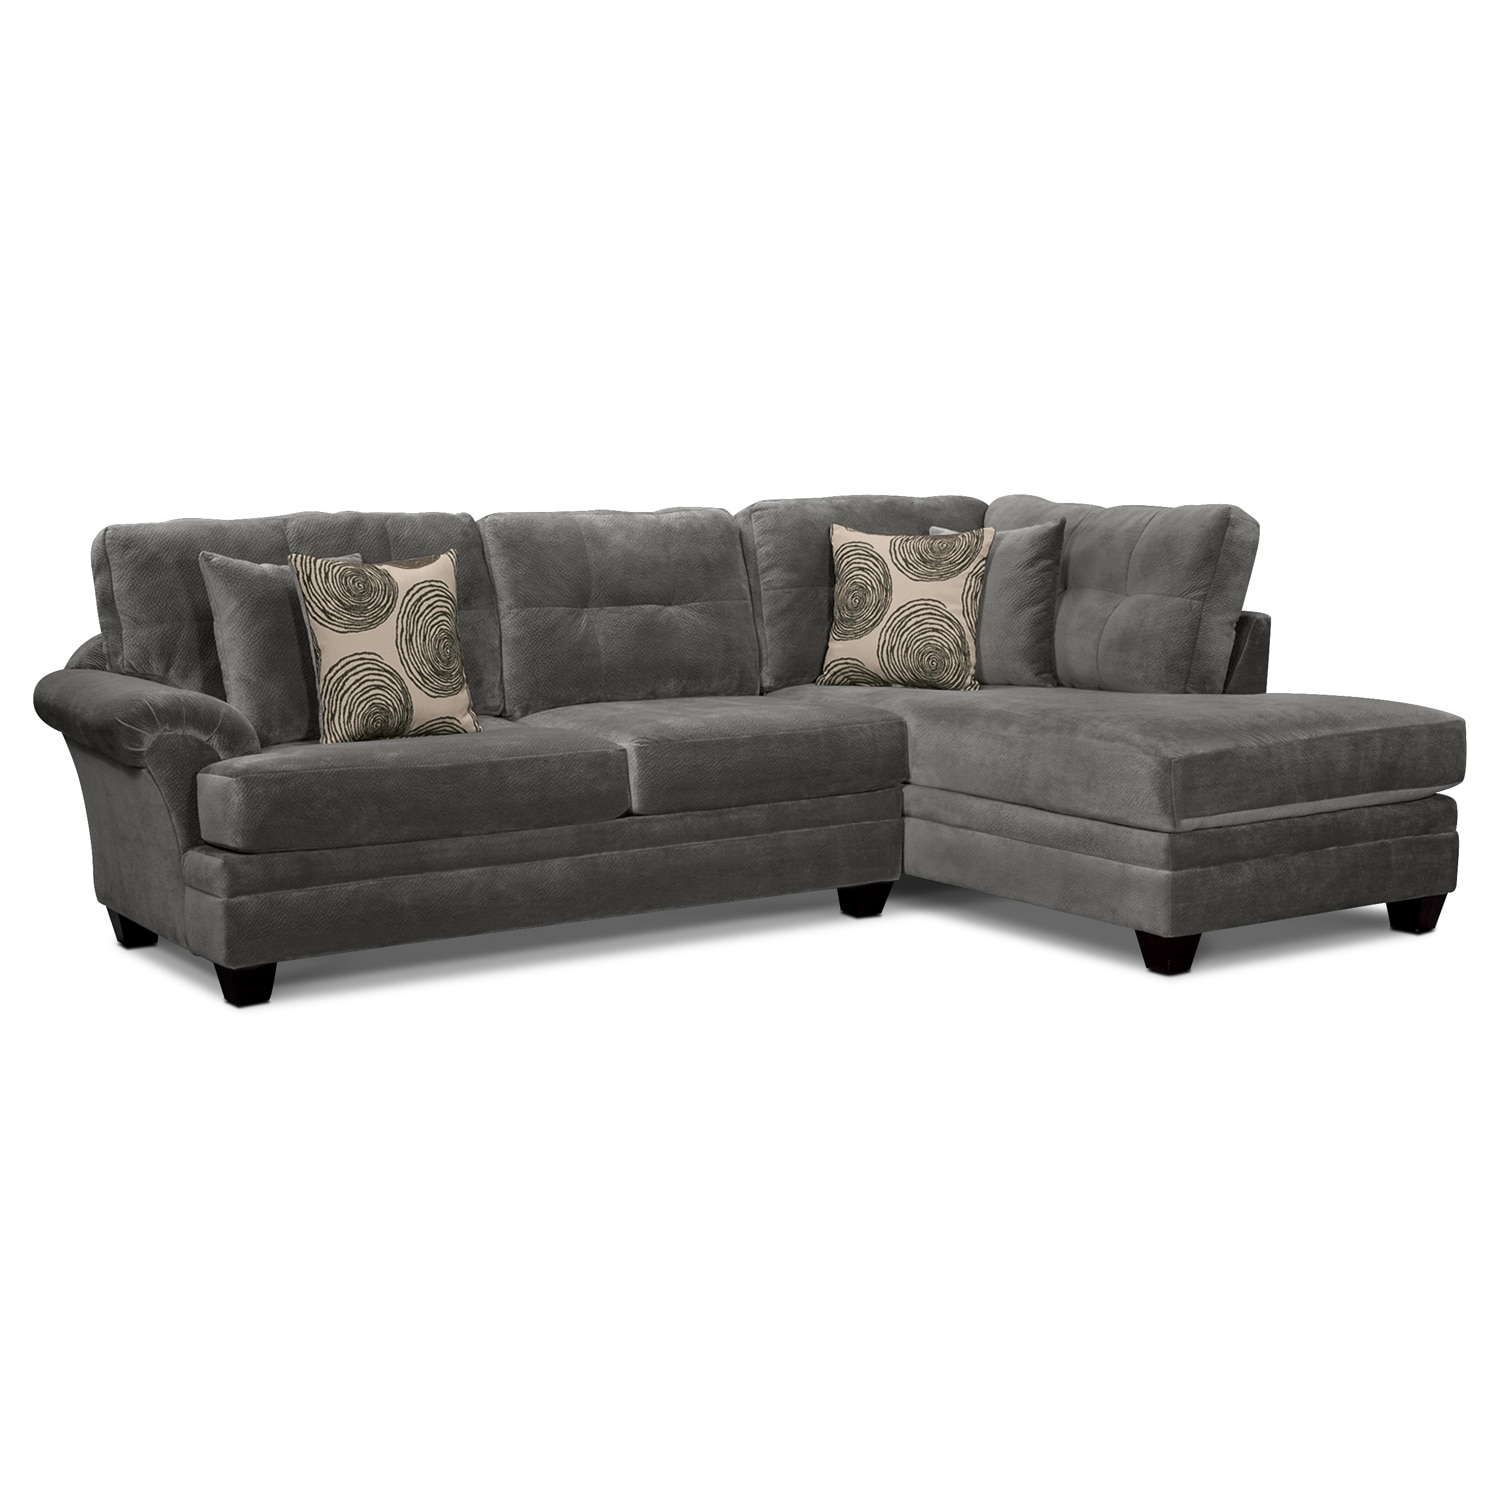 Cordelle 2 piece right facing chaise sectional gray for Couch with 2 chaises